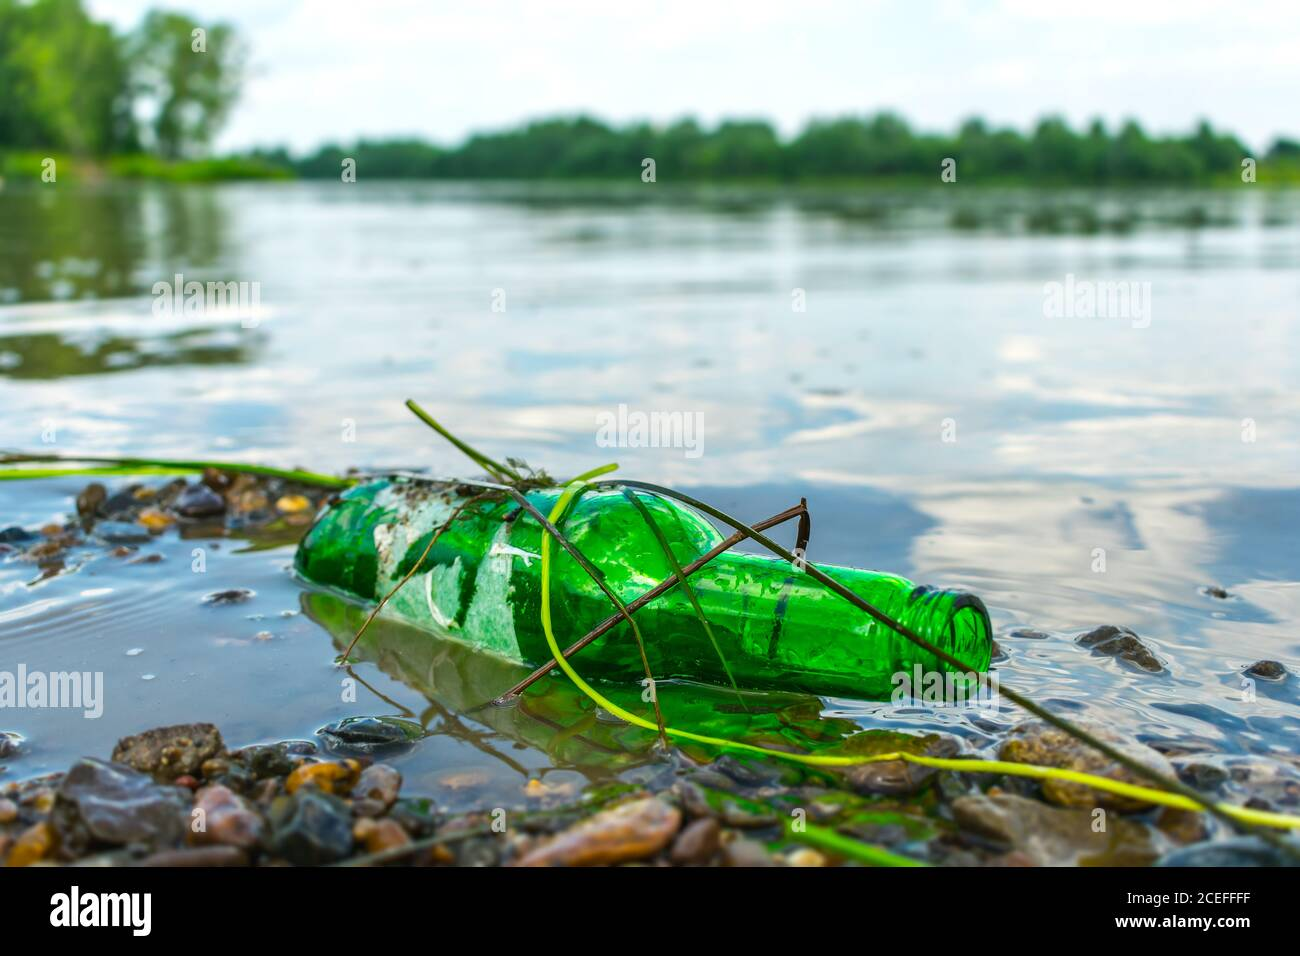 Glass bottle on the riverbank pollutes the environment. Nature pollution with garbage left by vacationers on the beach Stock Photo